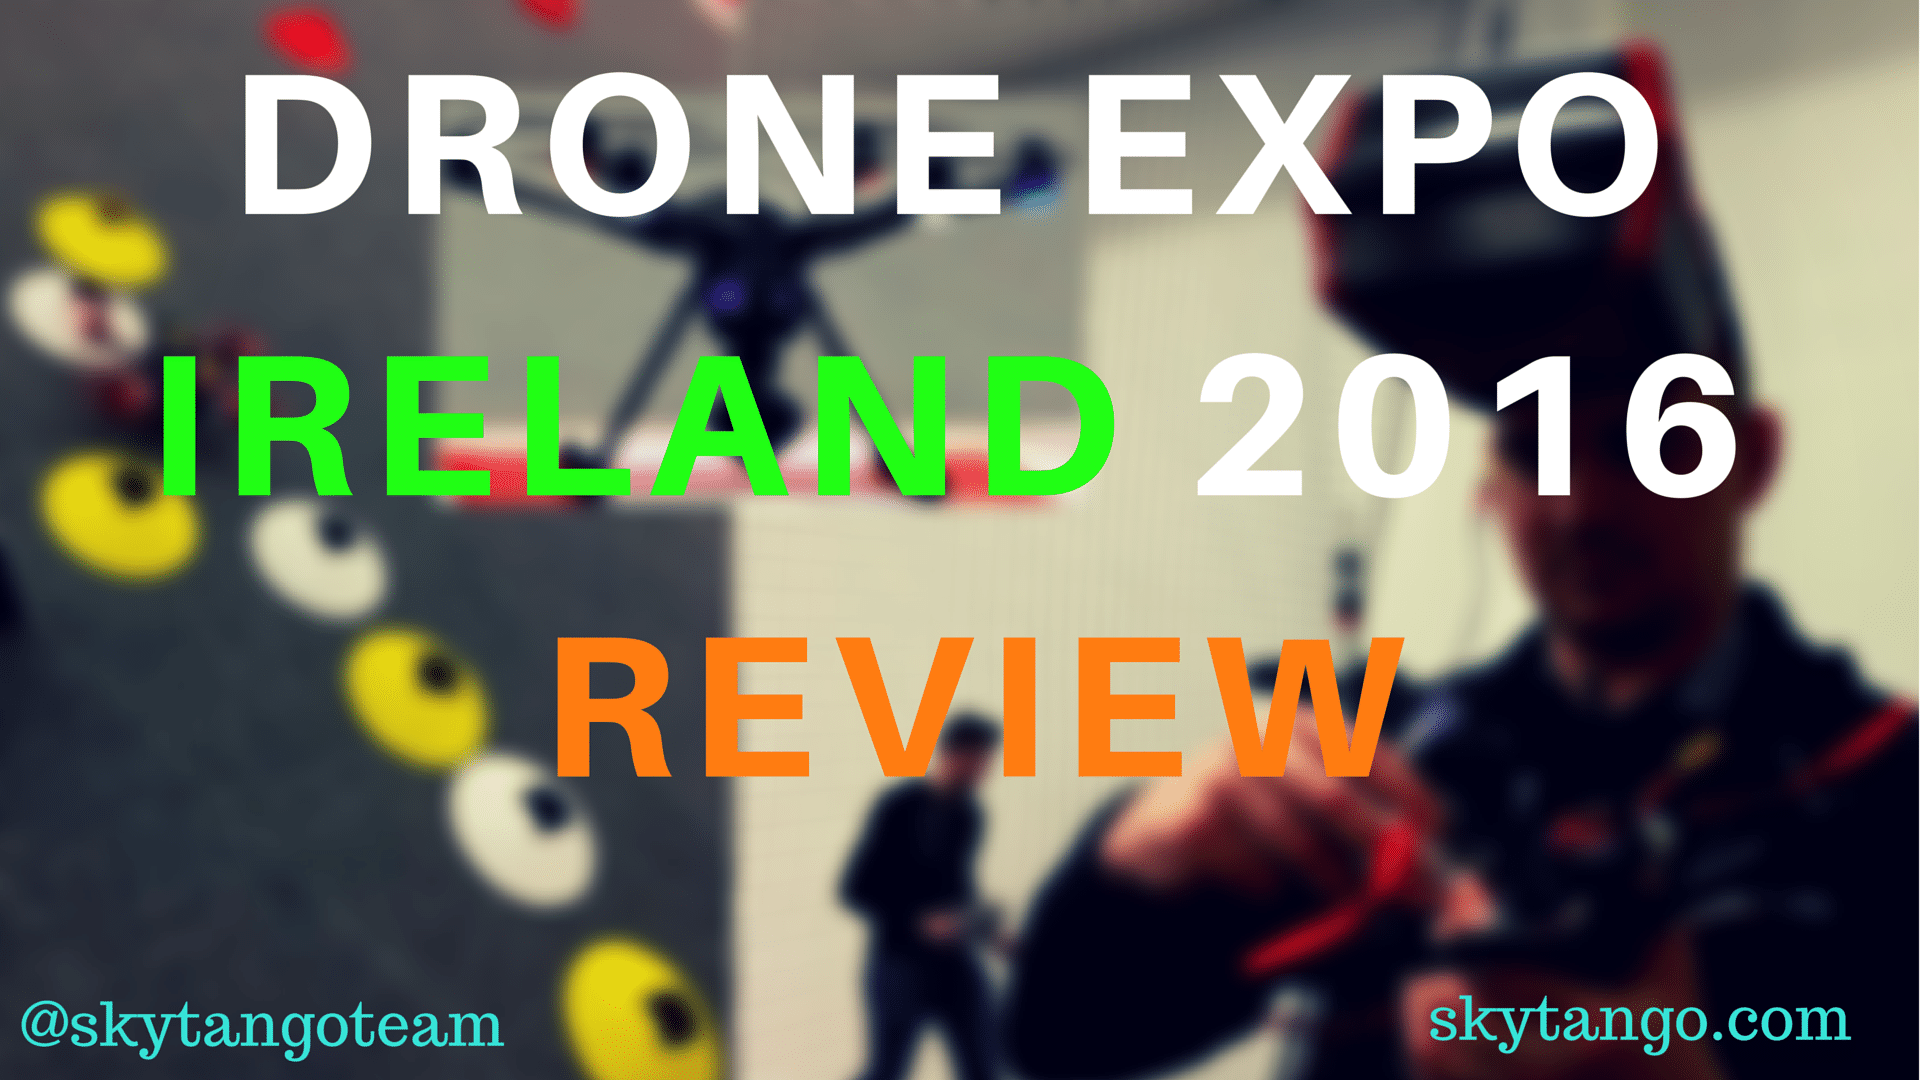 My Personal Review Of Drone Expo Ireland 2016 (And Ian Kiely's Post-Event Interview)